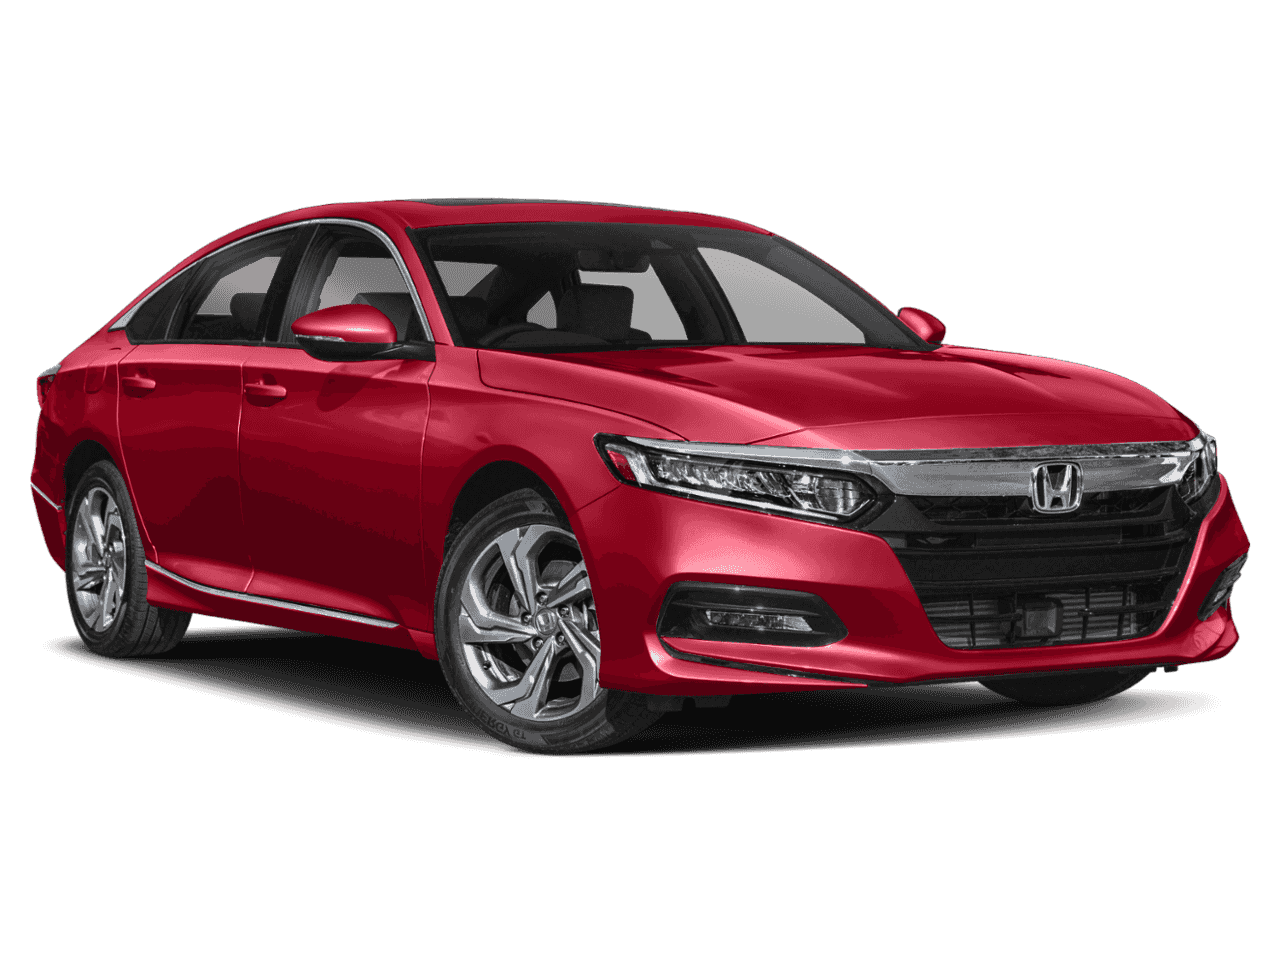 New 2019 Honda Accord EX-L 2.0T Auto